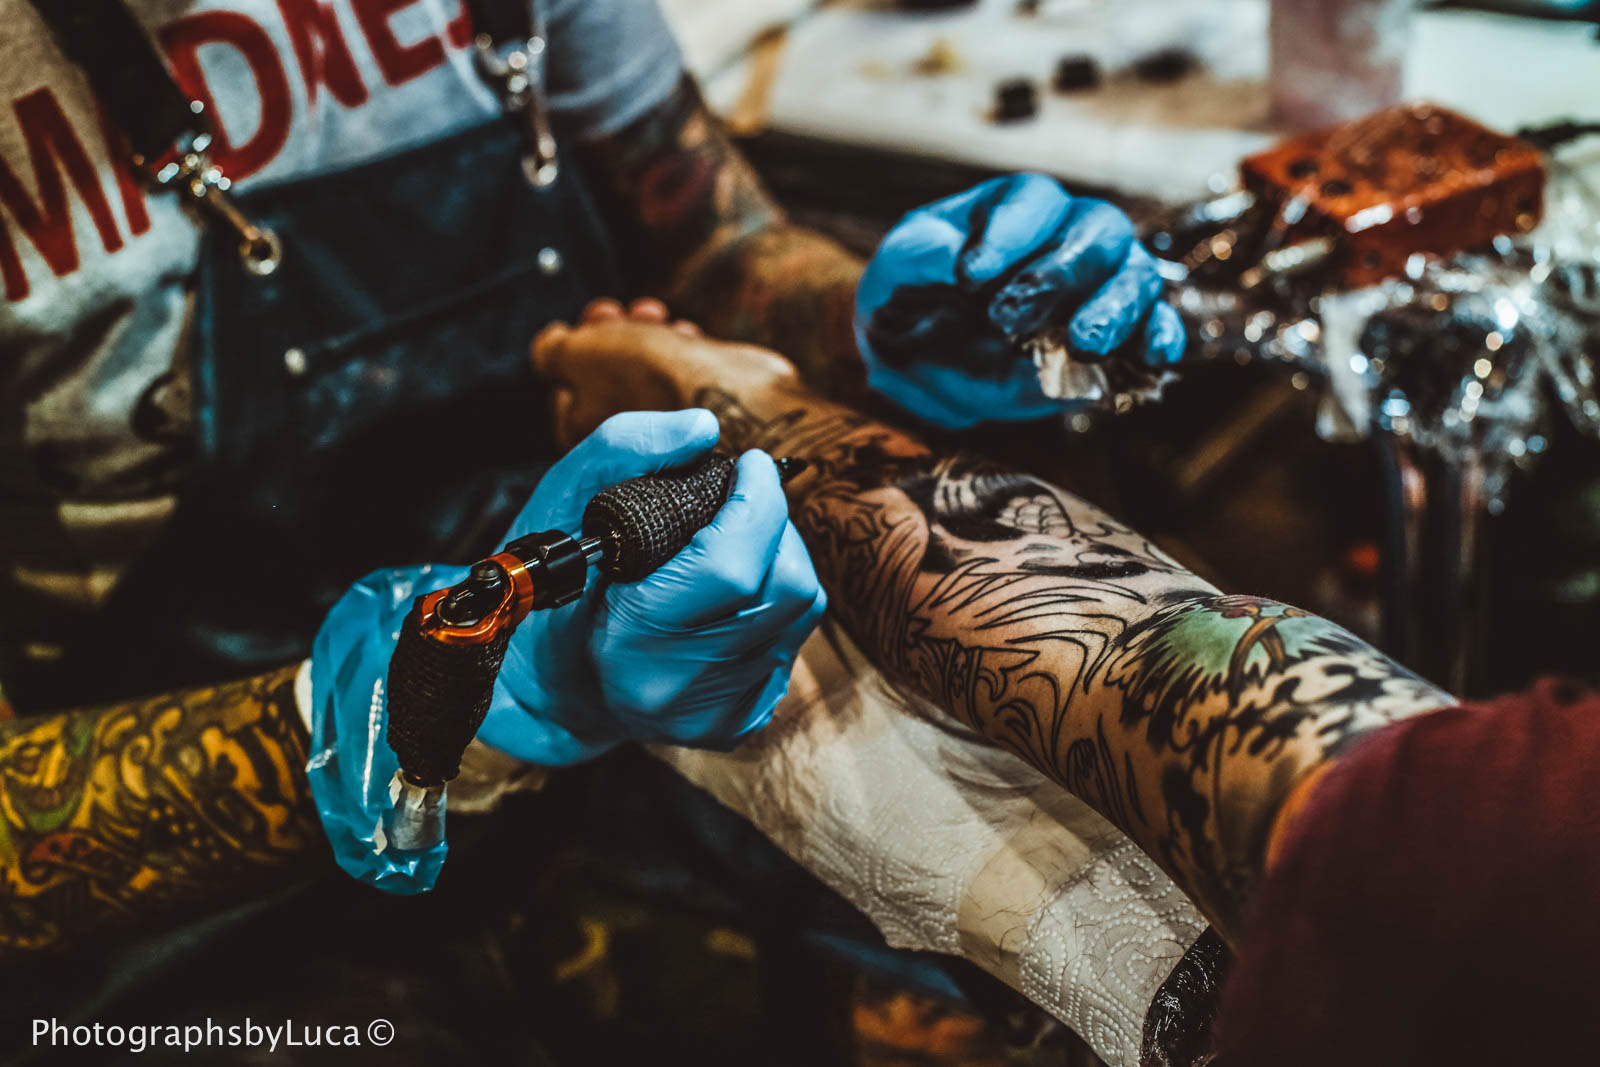 Gdansk Tattoo Convention 2017, photo: Luca Aliano/PhotographsbyLuca